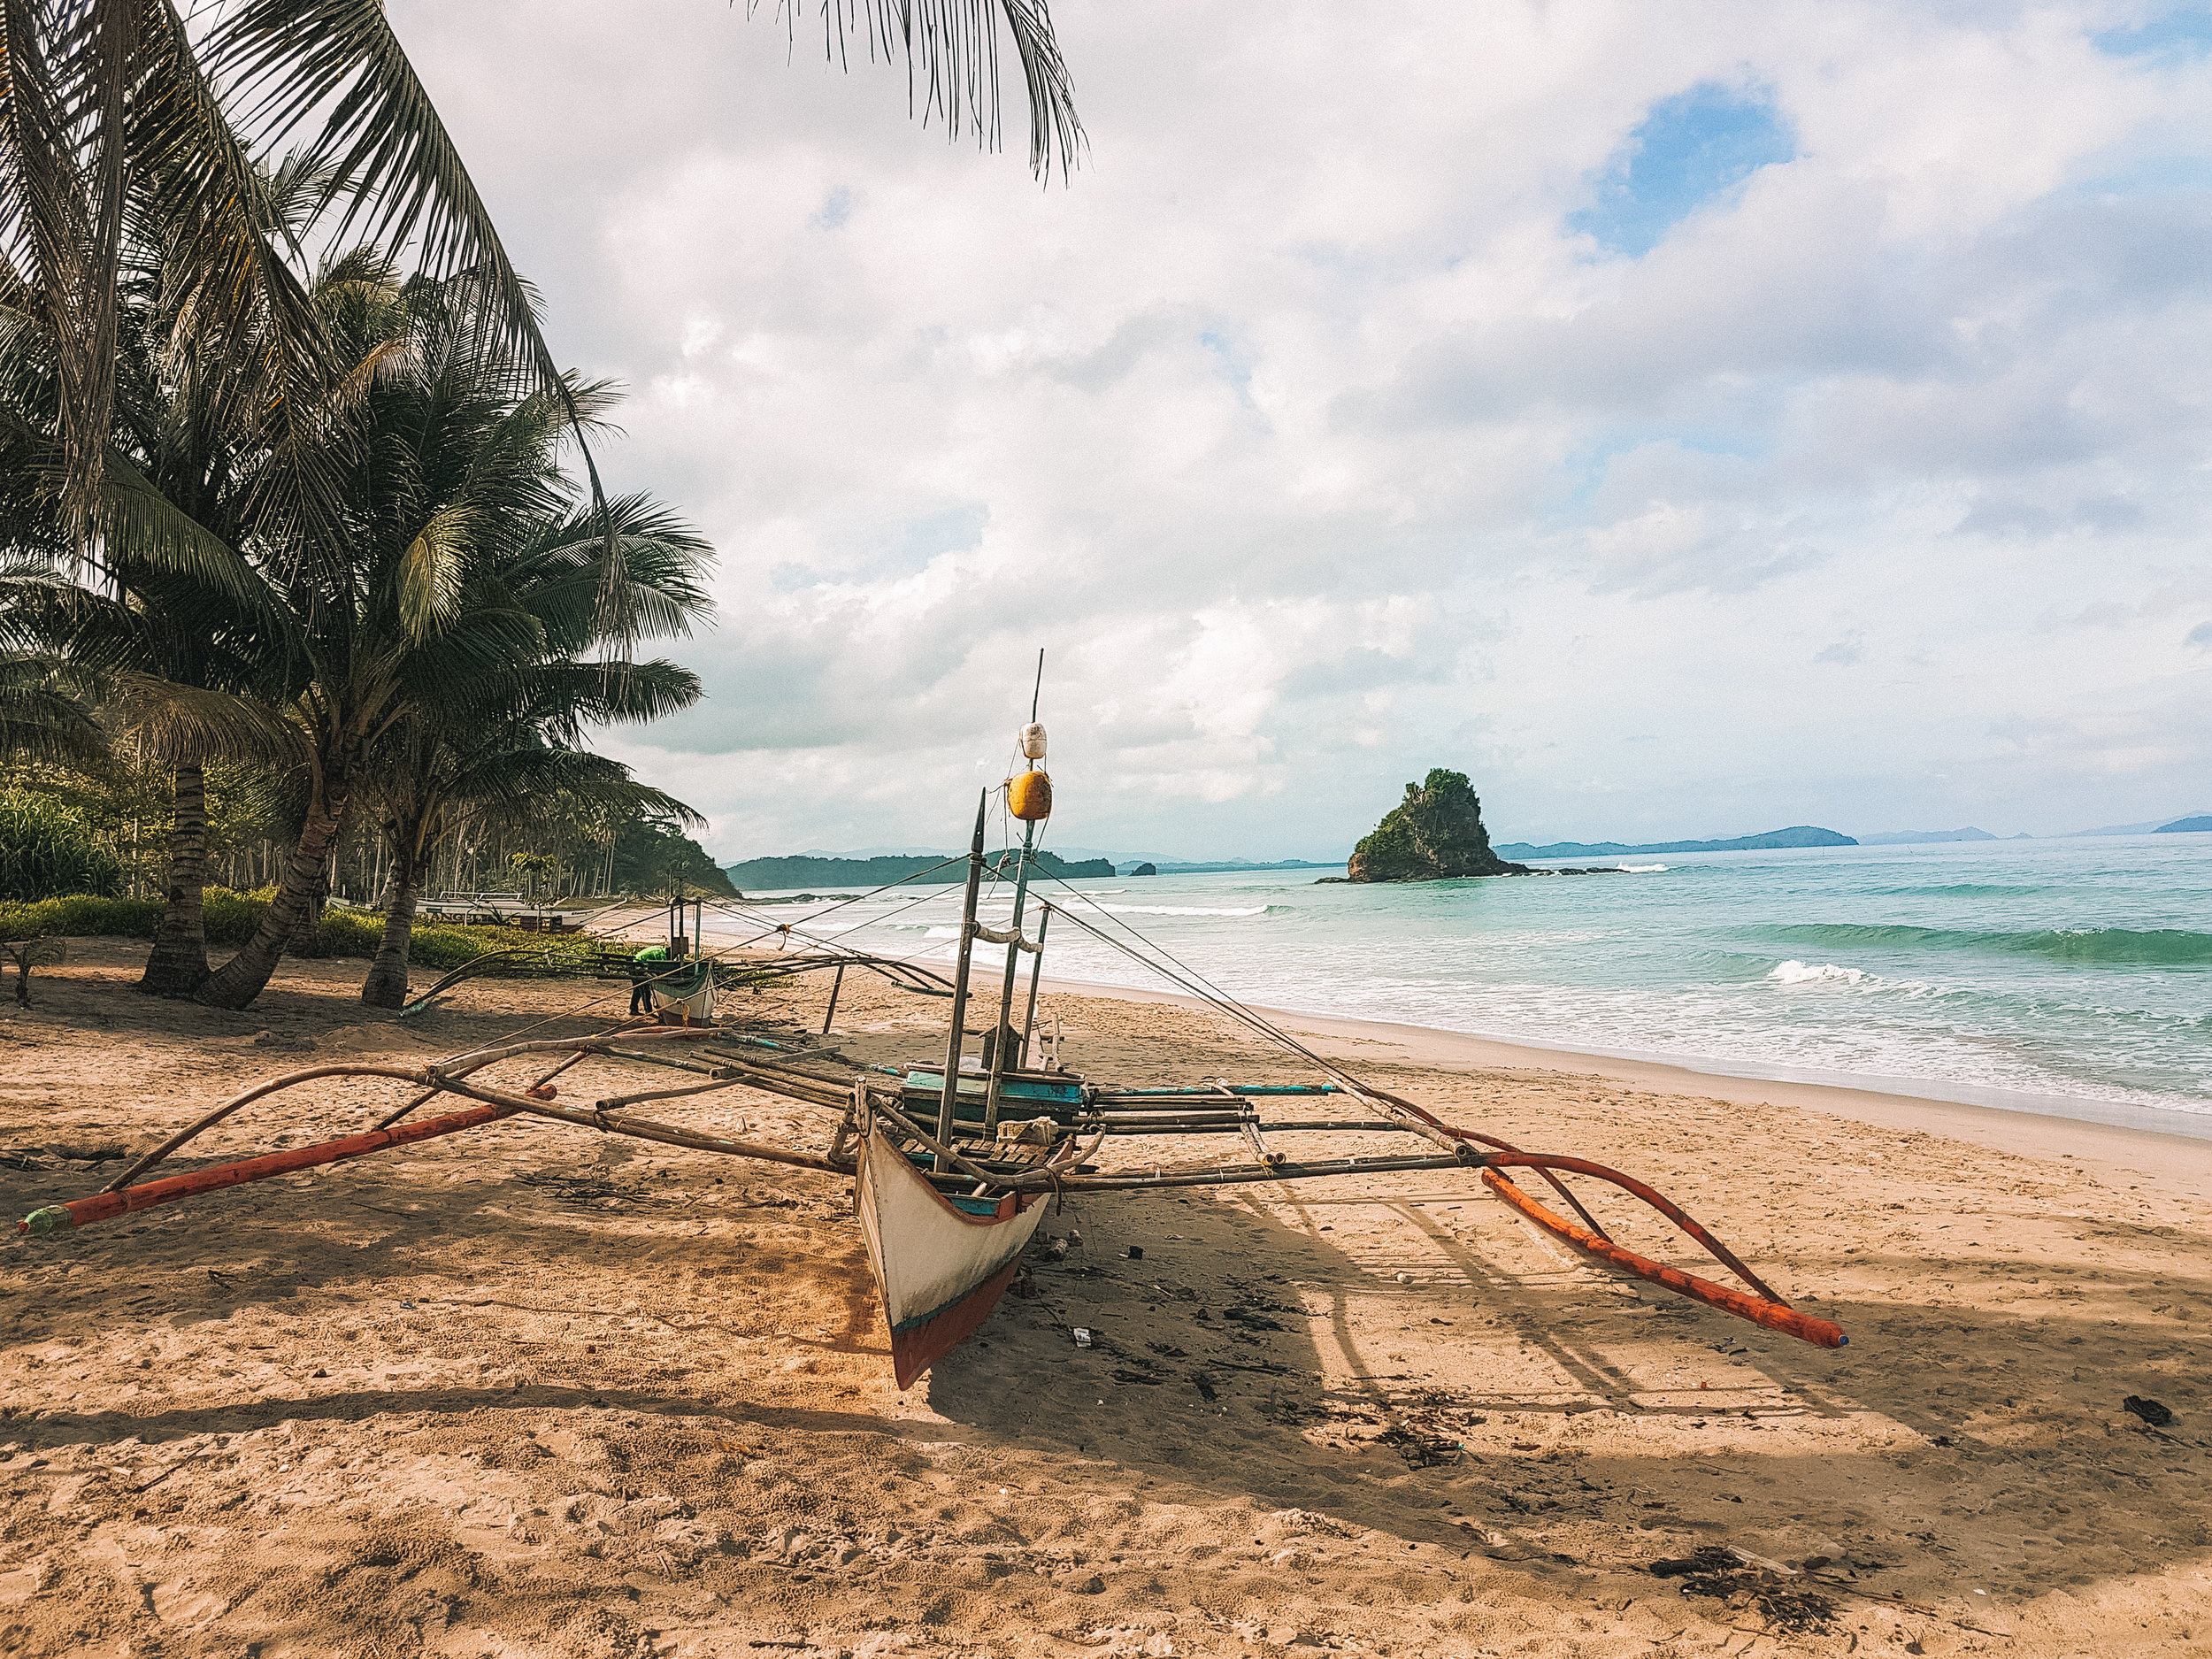 Alimanguan Beach, San Vicente's unmistakable tiny mound of rock where the surf spot is located nearby.